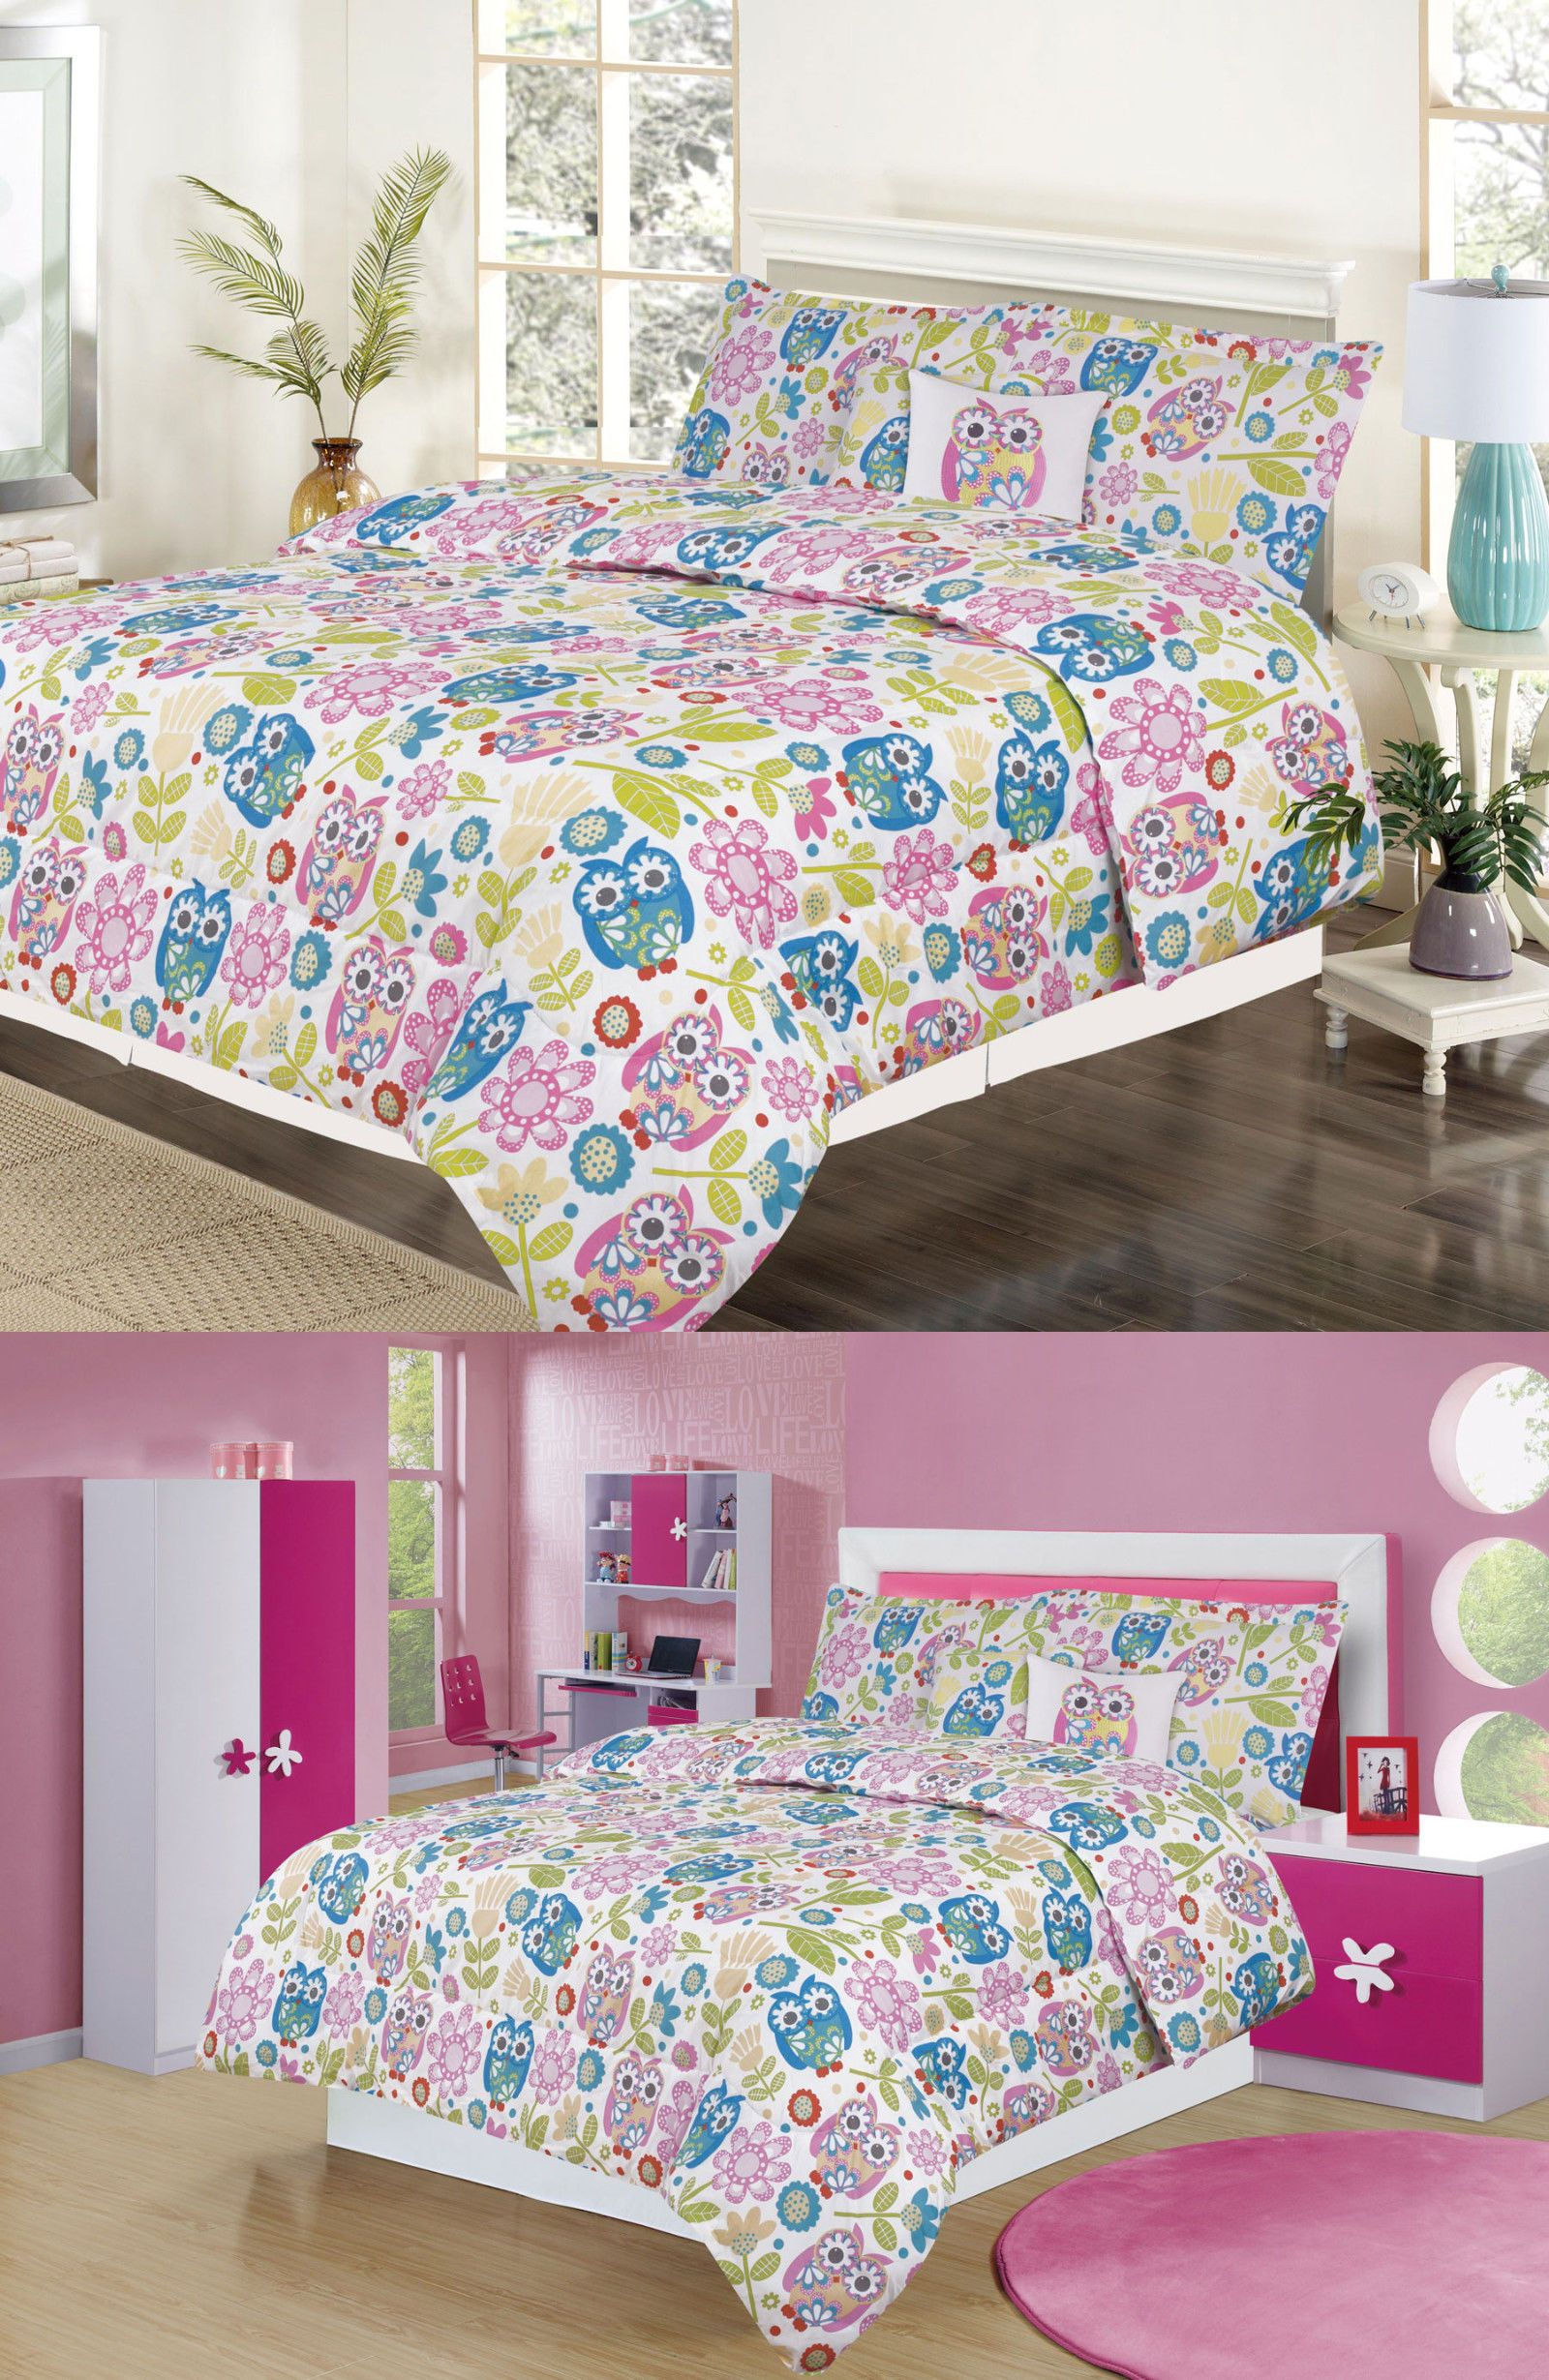 Comforters And Sets 66728 Girls Bedding Twin Or Full Comforter Bed